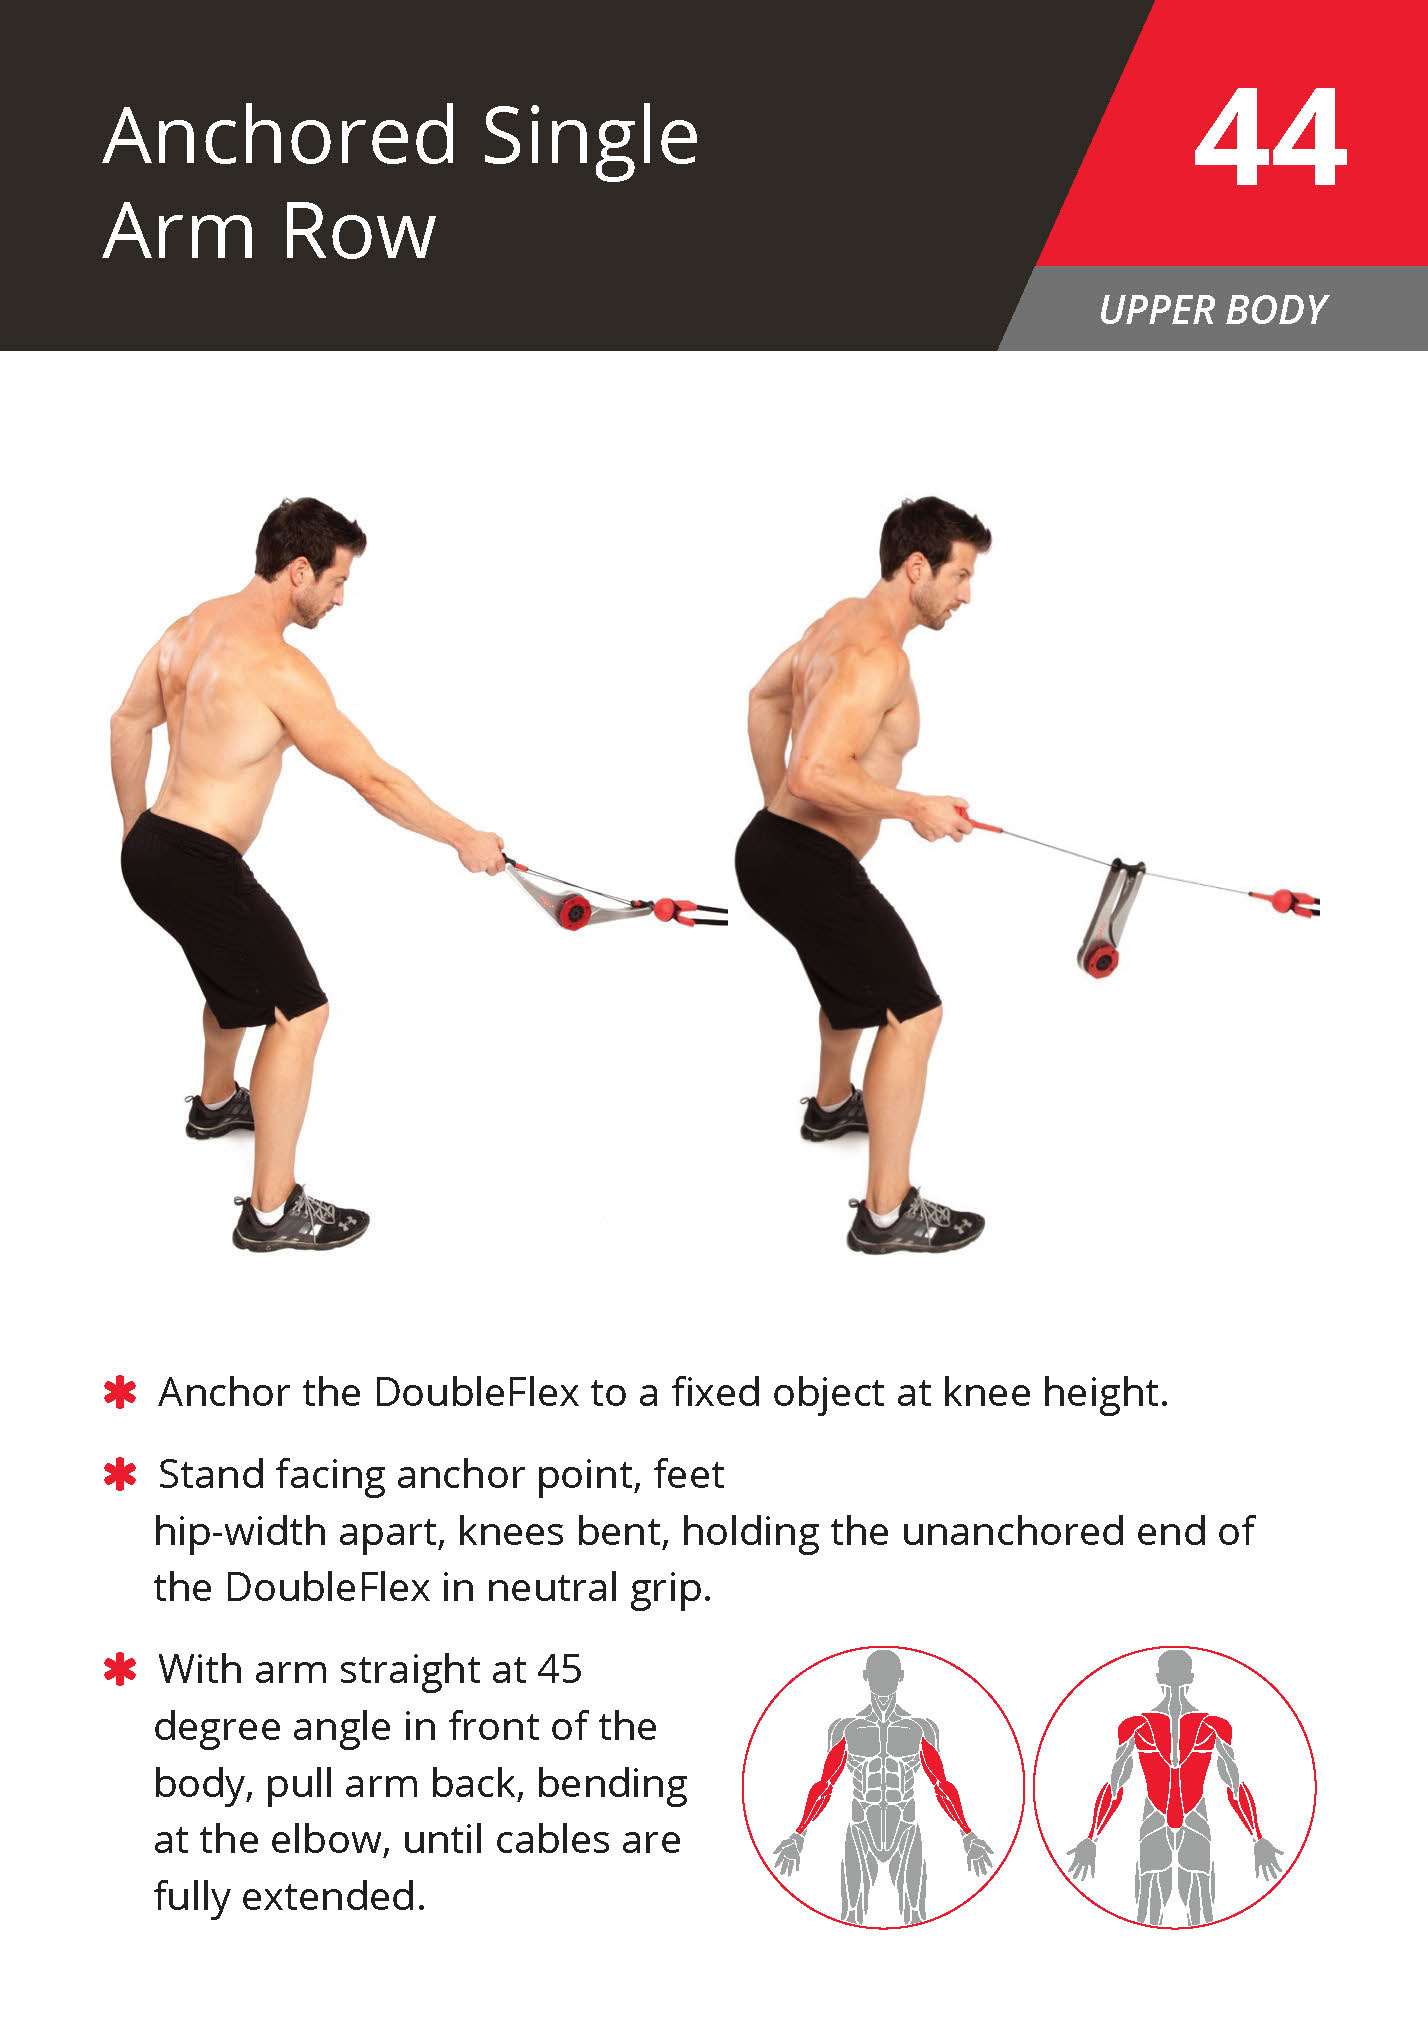 44 Anchored Single Arm Row